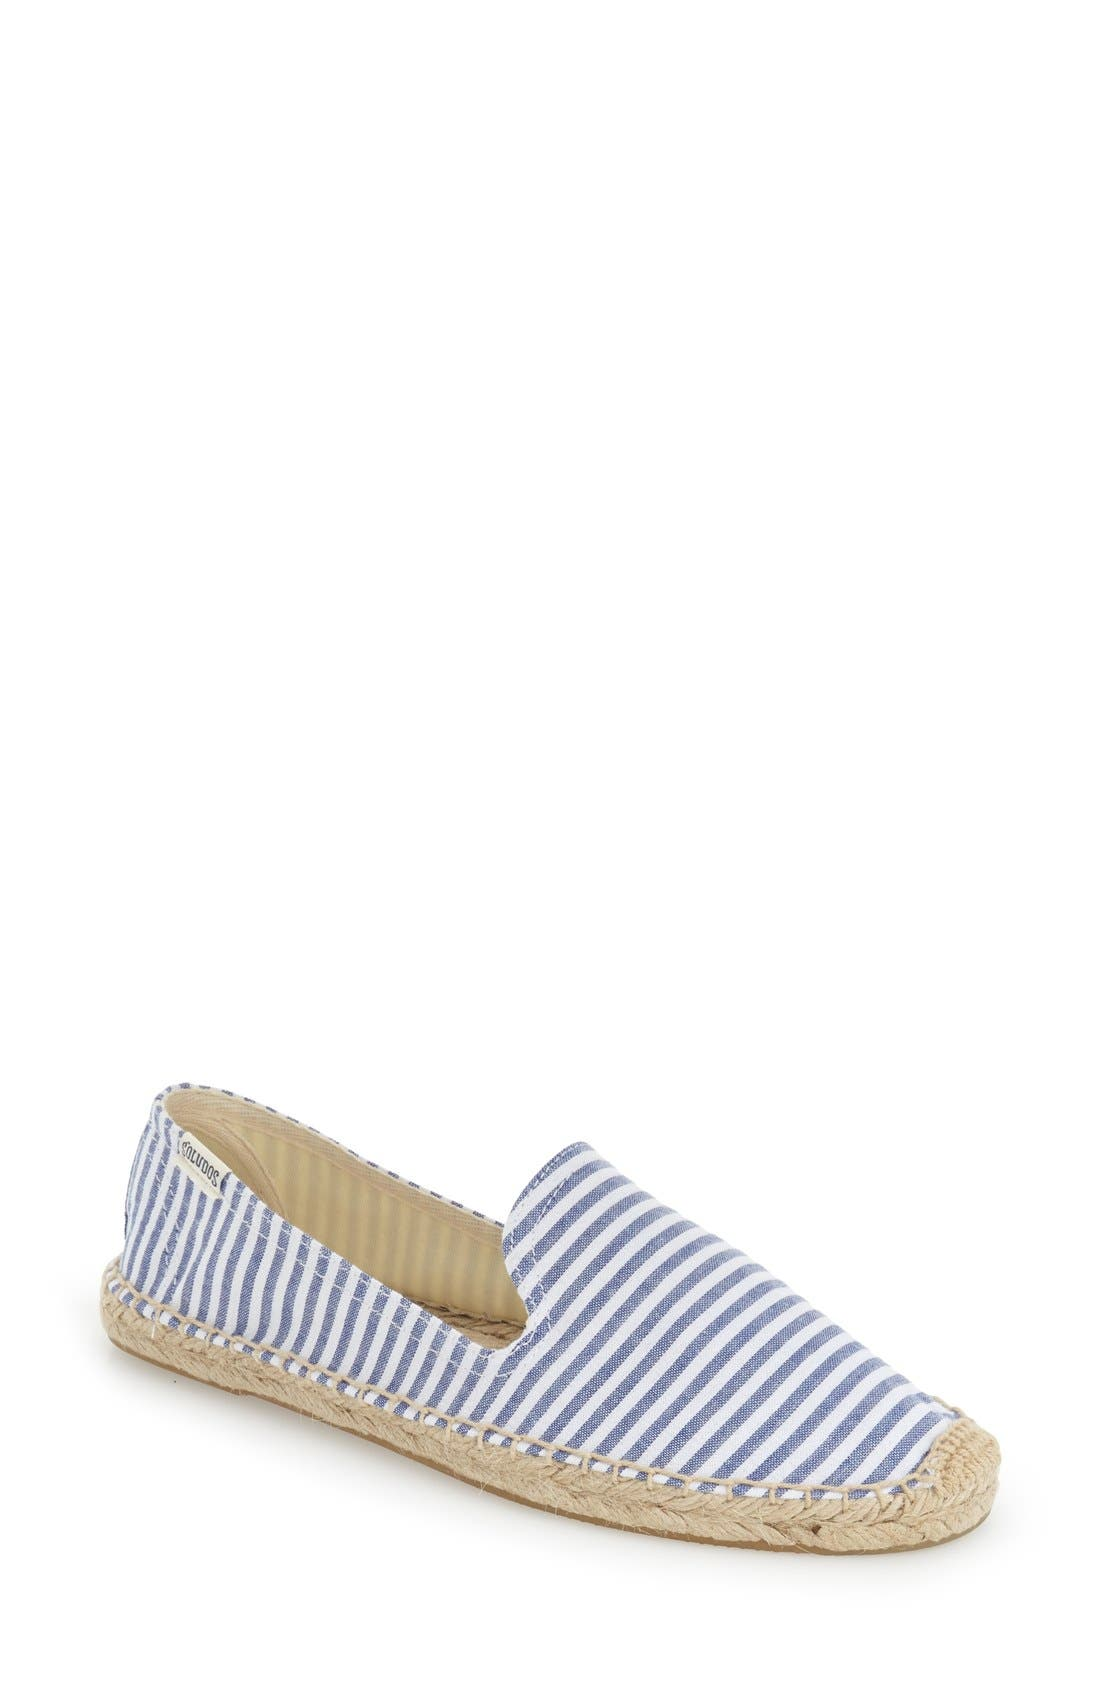 Main Image - Soludos Smoking Slipper Espadrille (Women)